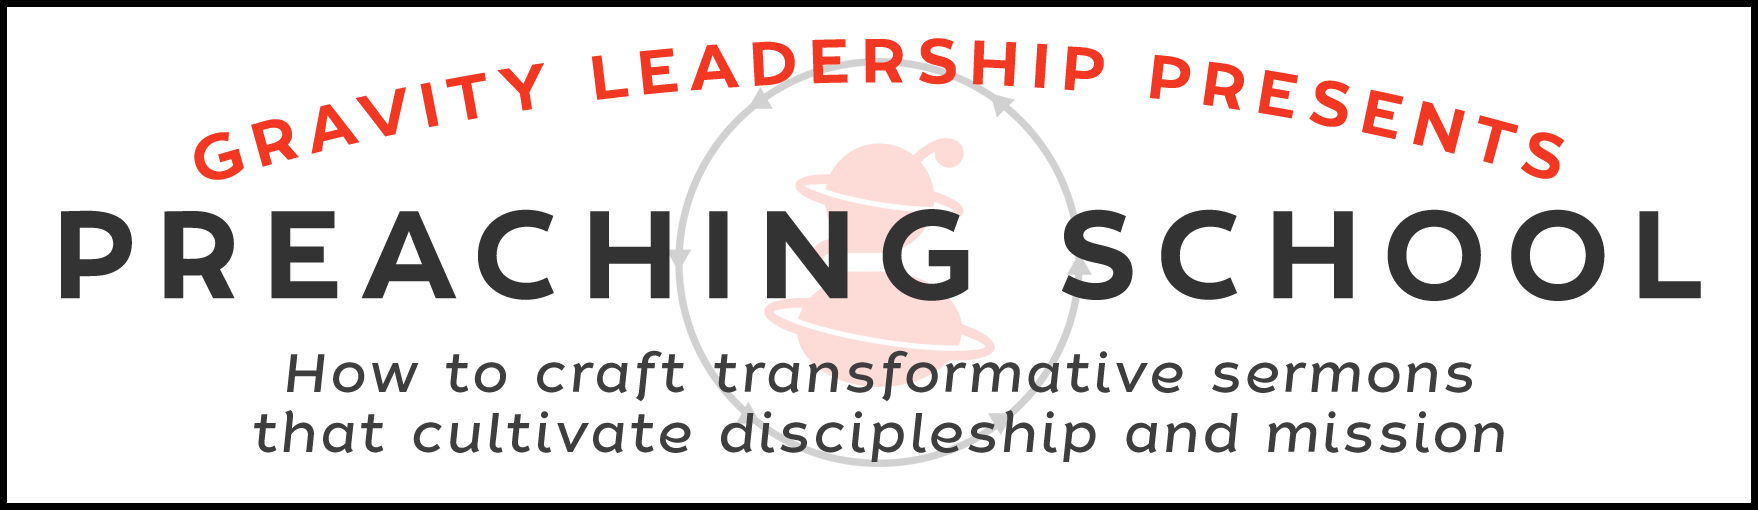 A 4-month interactive training intensive on <strong>how to craft transformative sermons</strong> that cultivate discipleship and mission